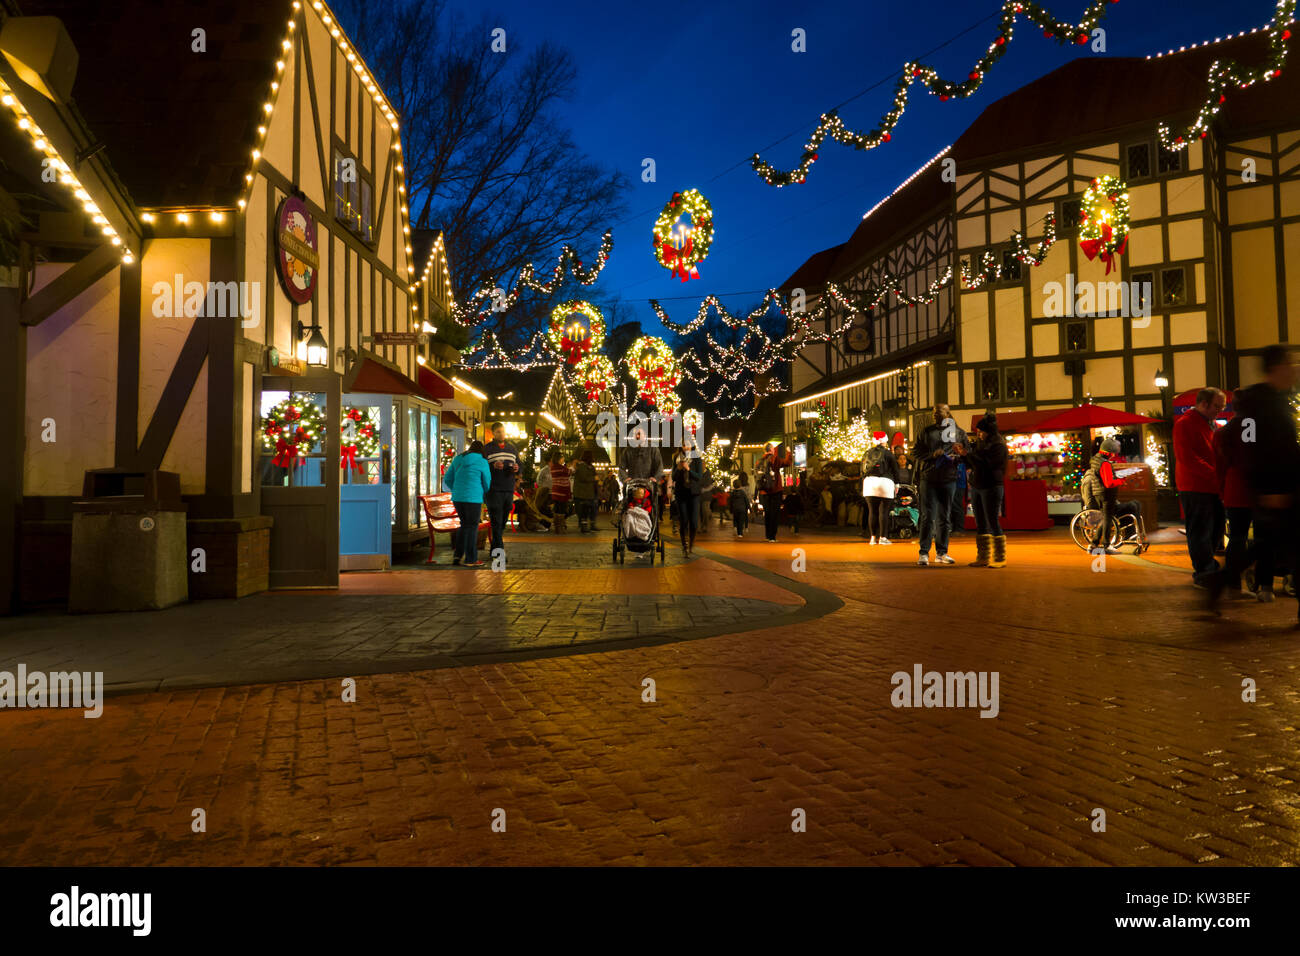 USA Virginia VA Williamsburg Christmas holiday at Busch Gardens theme park Stock Photo